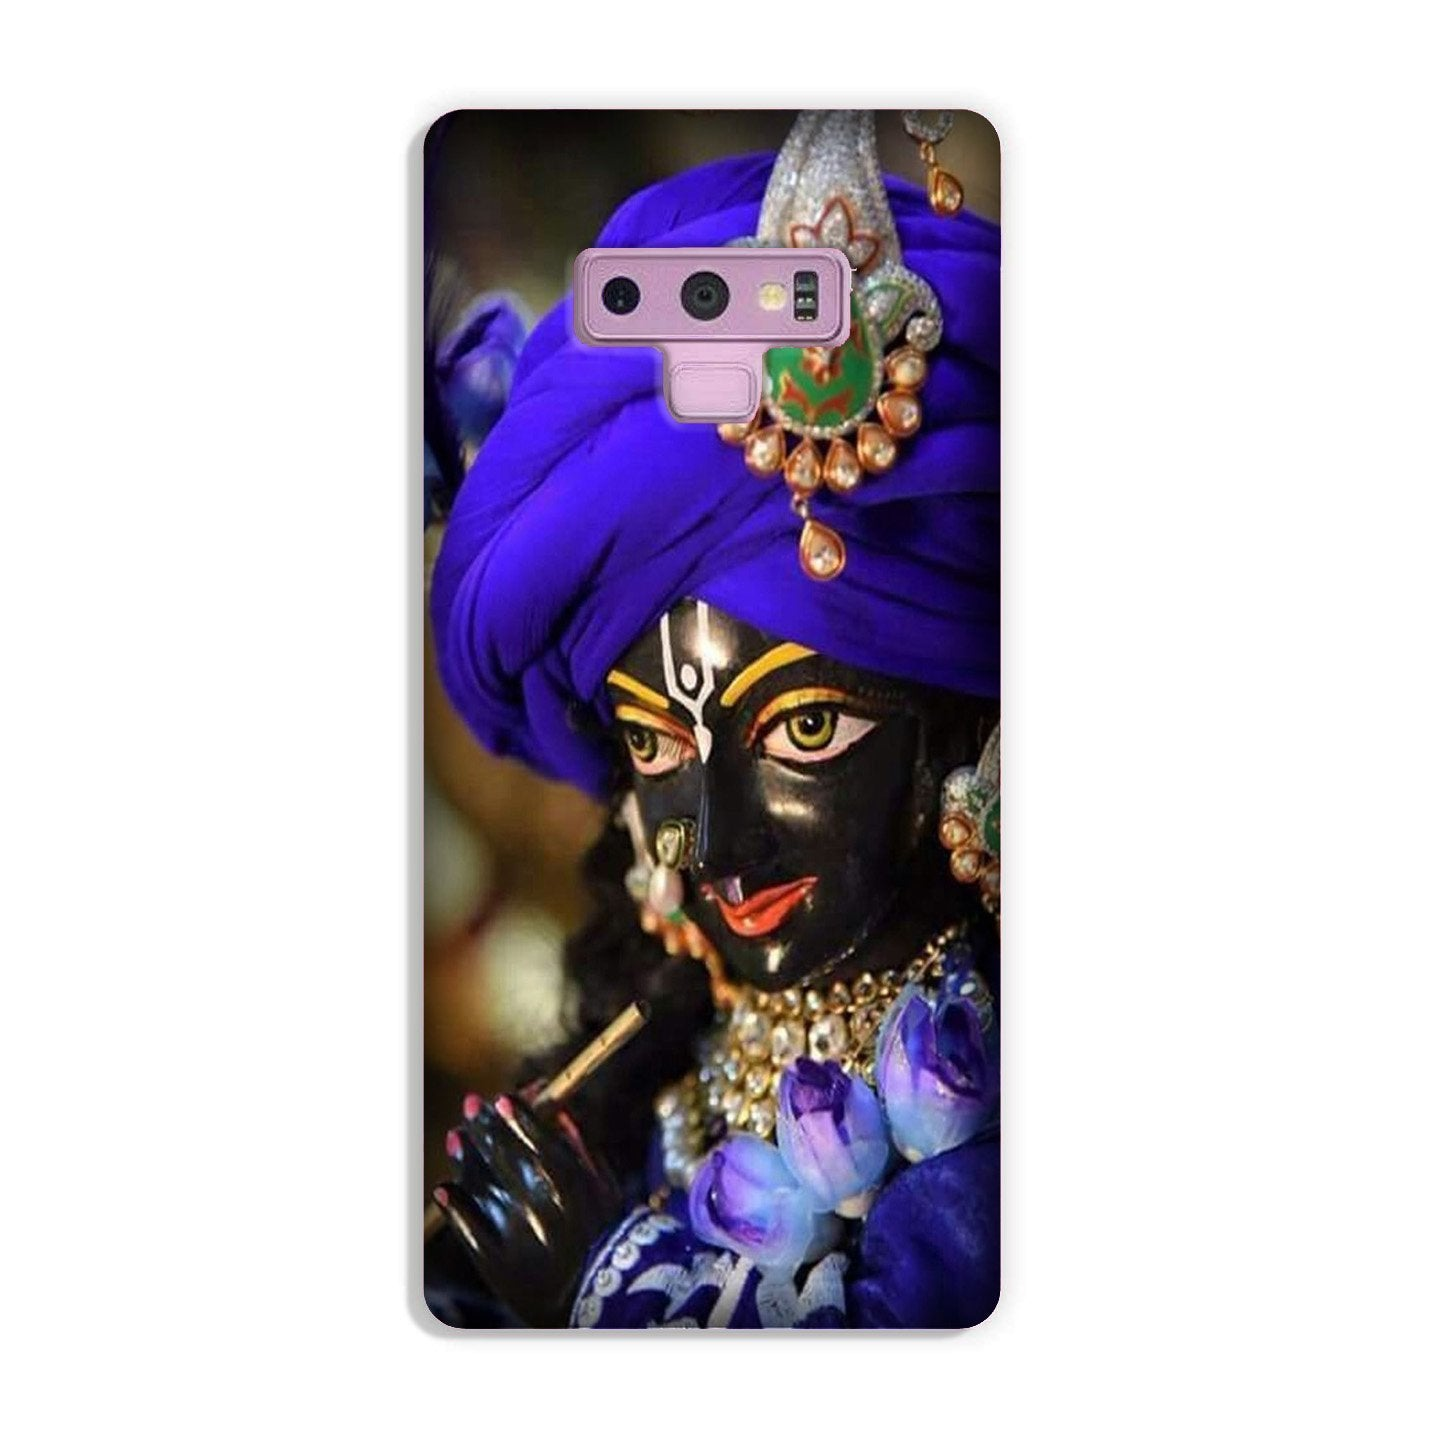 Lord Krishna4 Case for Galaxy Note 9